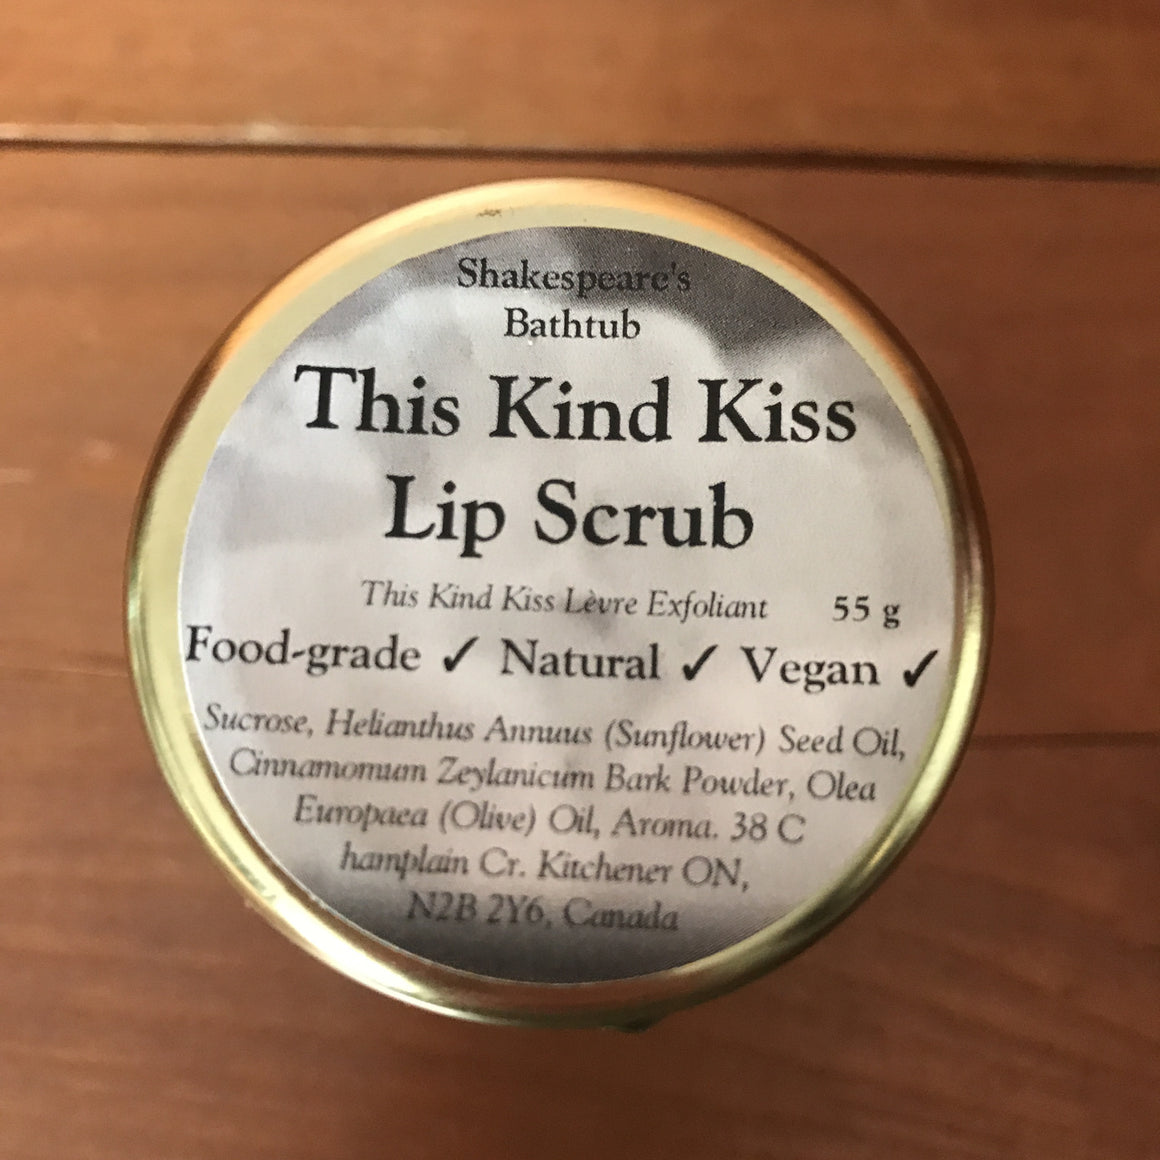 This Kind Kiss Lip Scrub